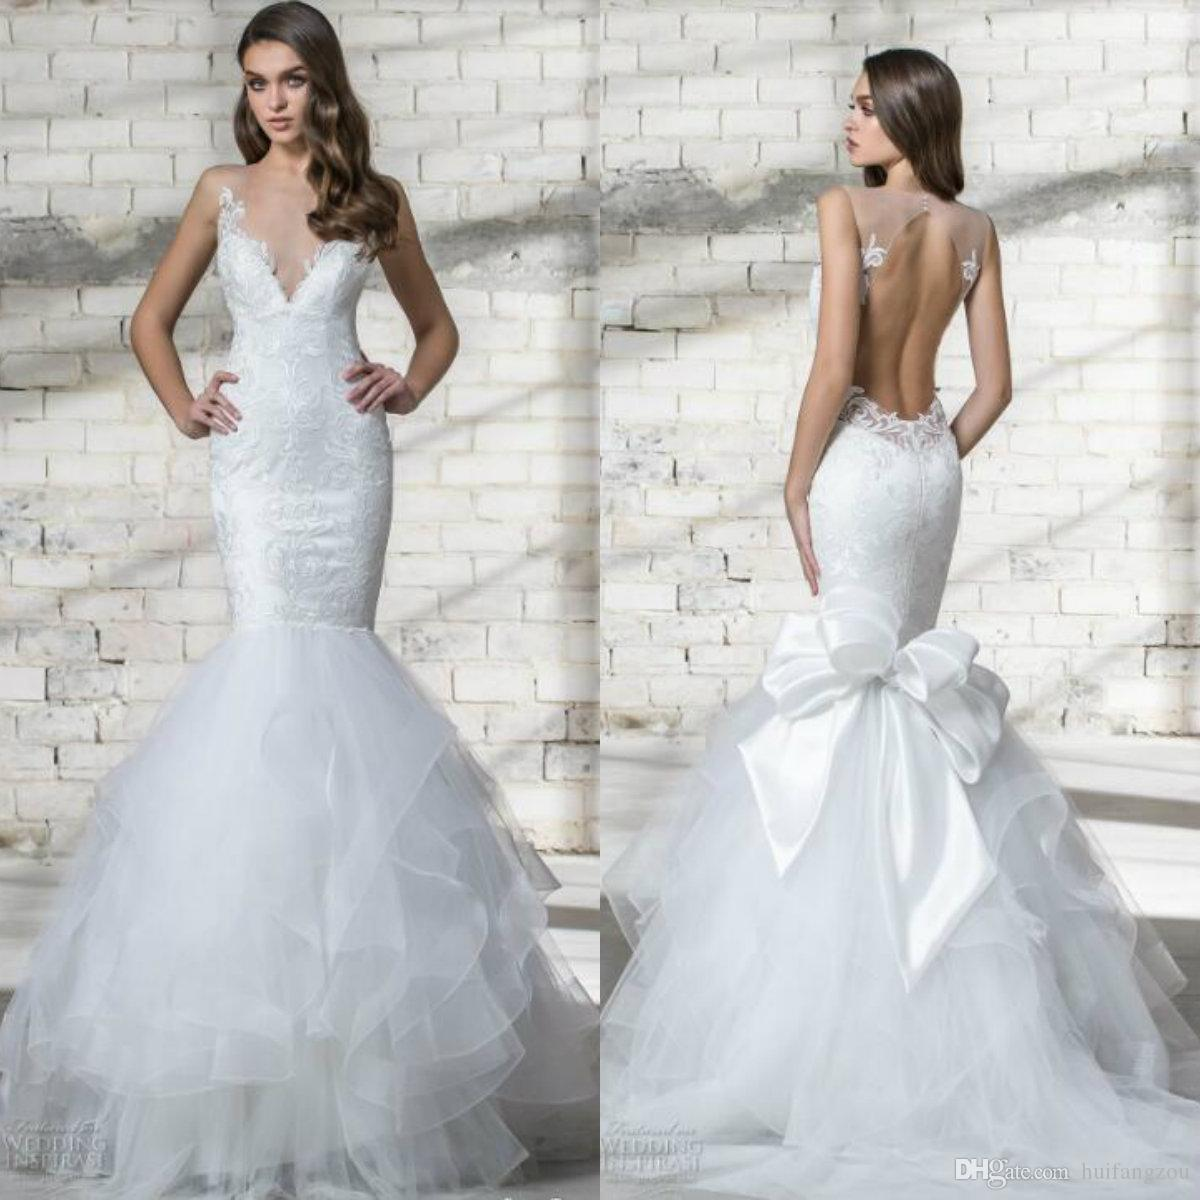 Vintage Mermaid Wedding Dress Pnina Tornai 2019 V Neck Sheer Straps Lace Applique Backless Bridal Gowns With Tiered Tulle Train